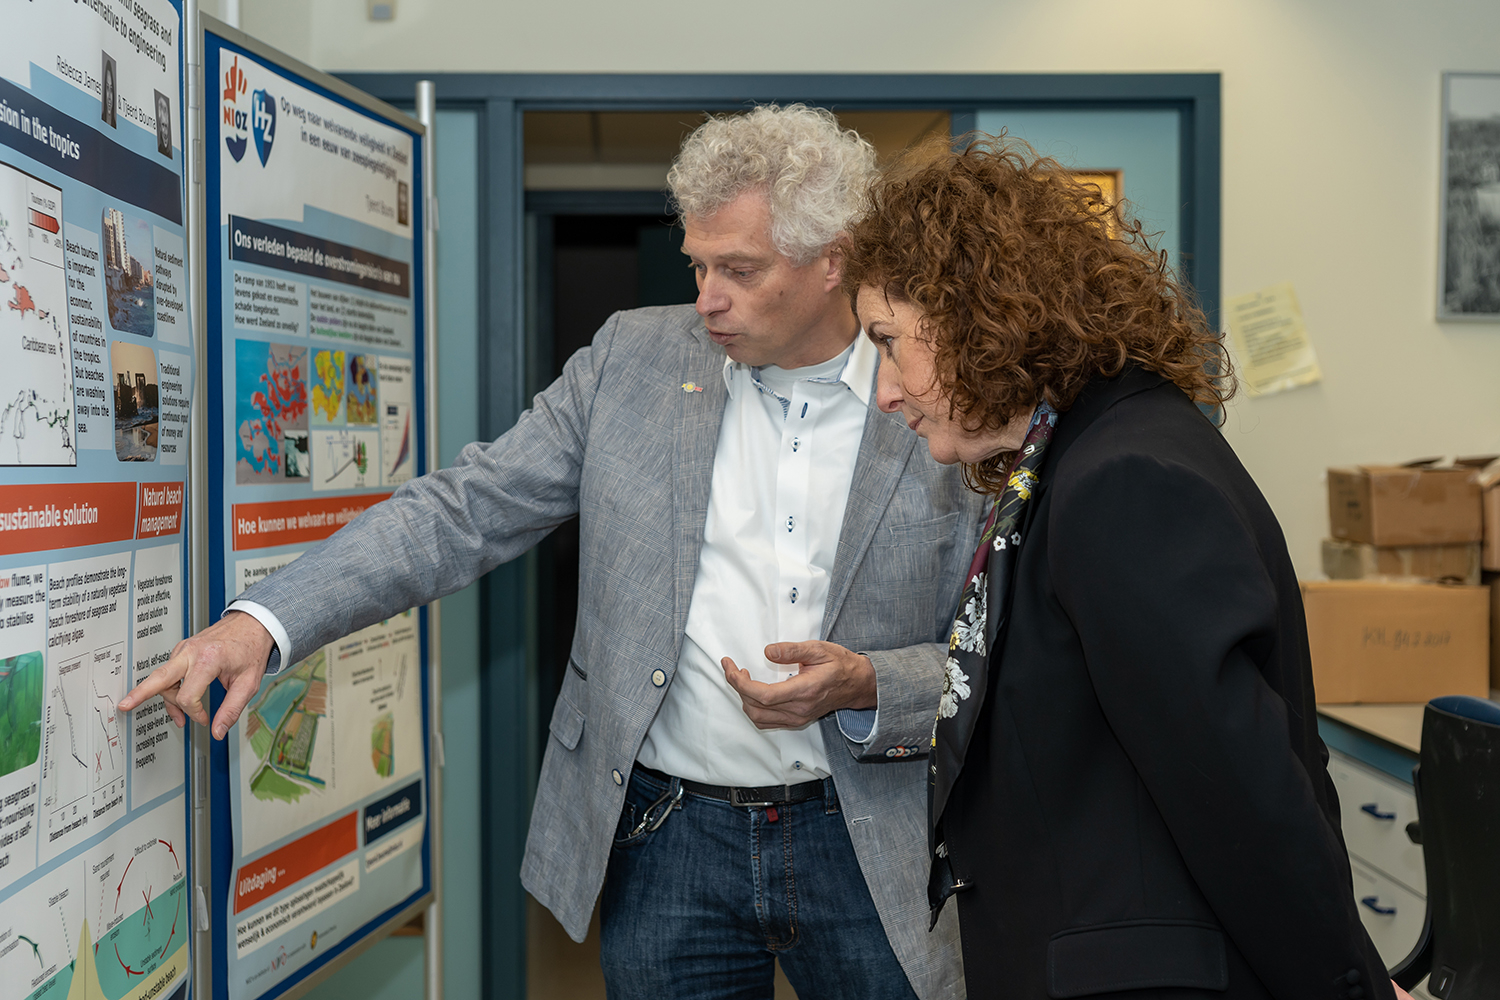 NIOZ researcher Tjeerd Bouma explains his research on nature based fload defences. Foto: Ernesta Verburg.